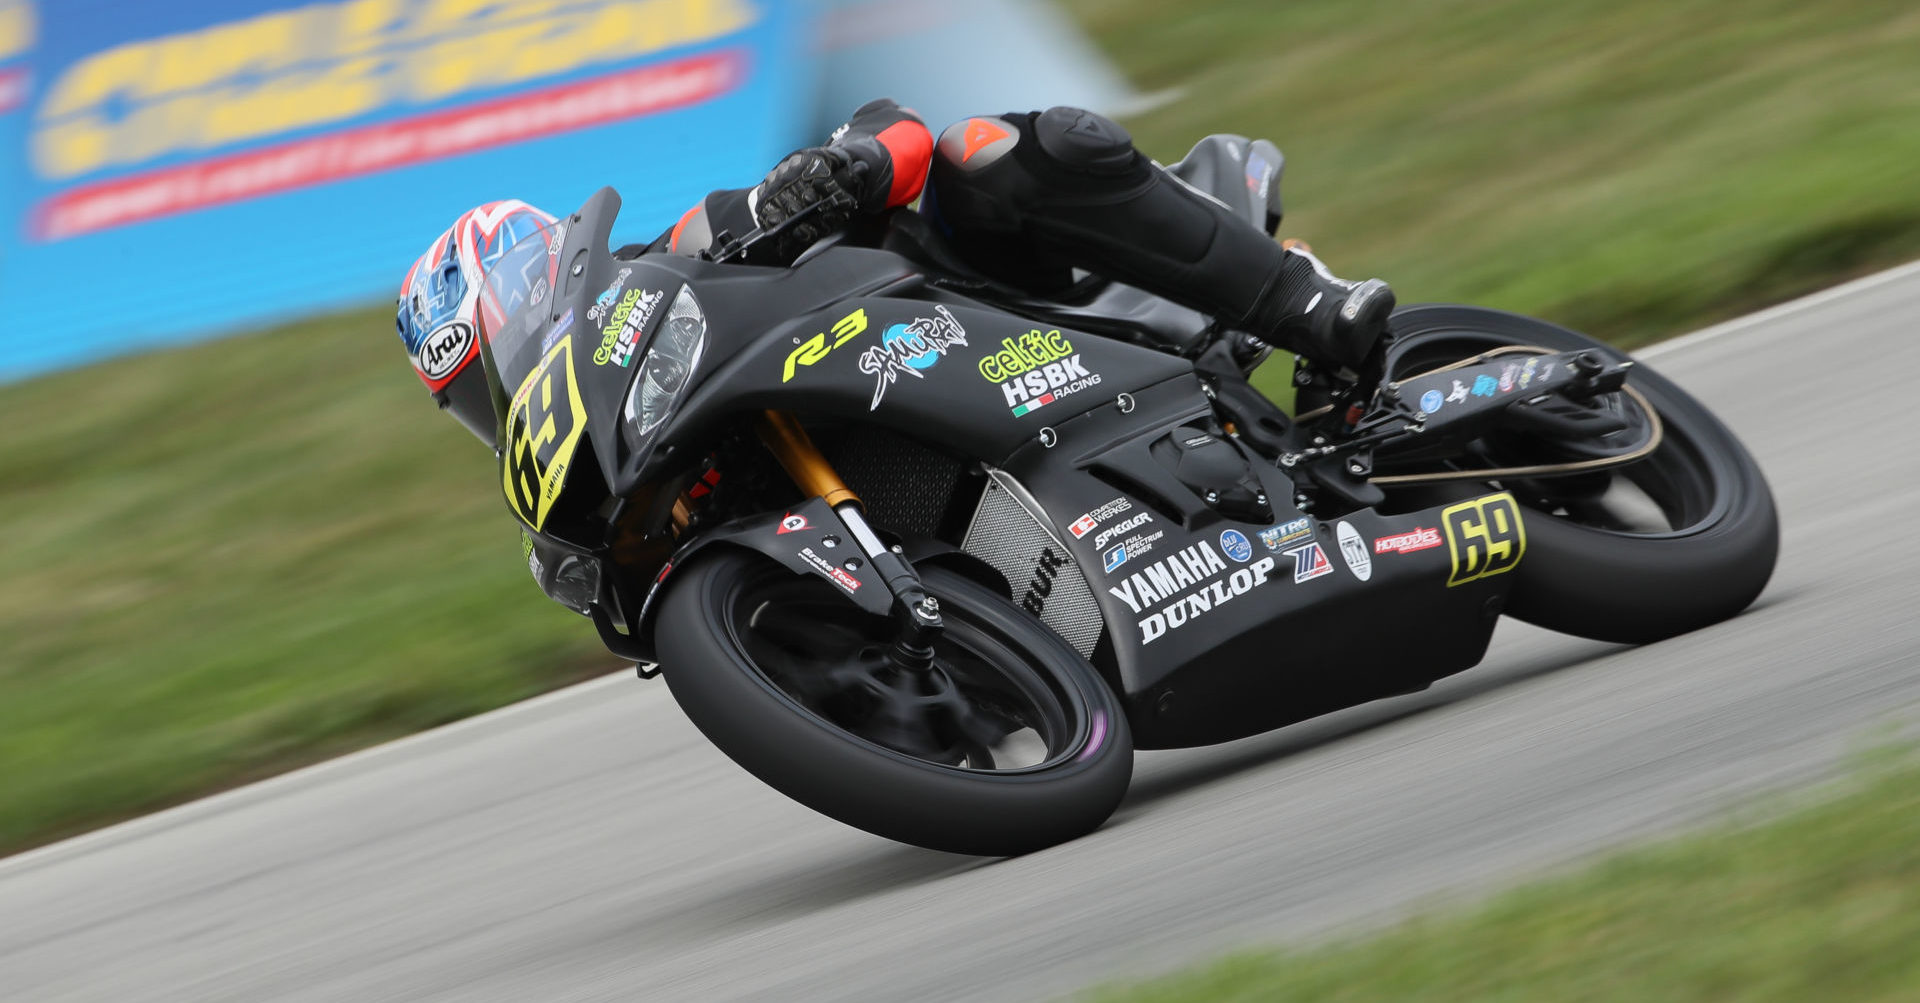 Dallas Daniels (69) in action on a Celtic HSBK Racing Yamaha YZF-R3 during a MotoAmerica Junior Cup race at Pittsburgh International Race Complex. Photo by Brian J. Nelson.